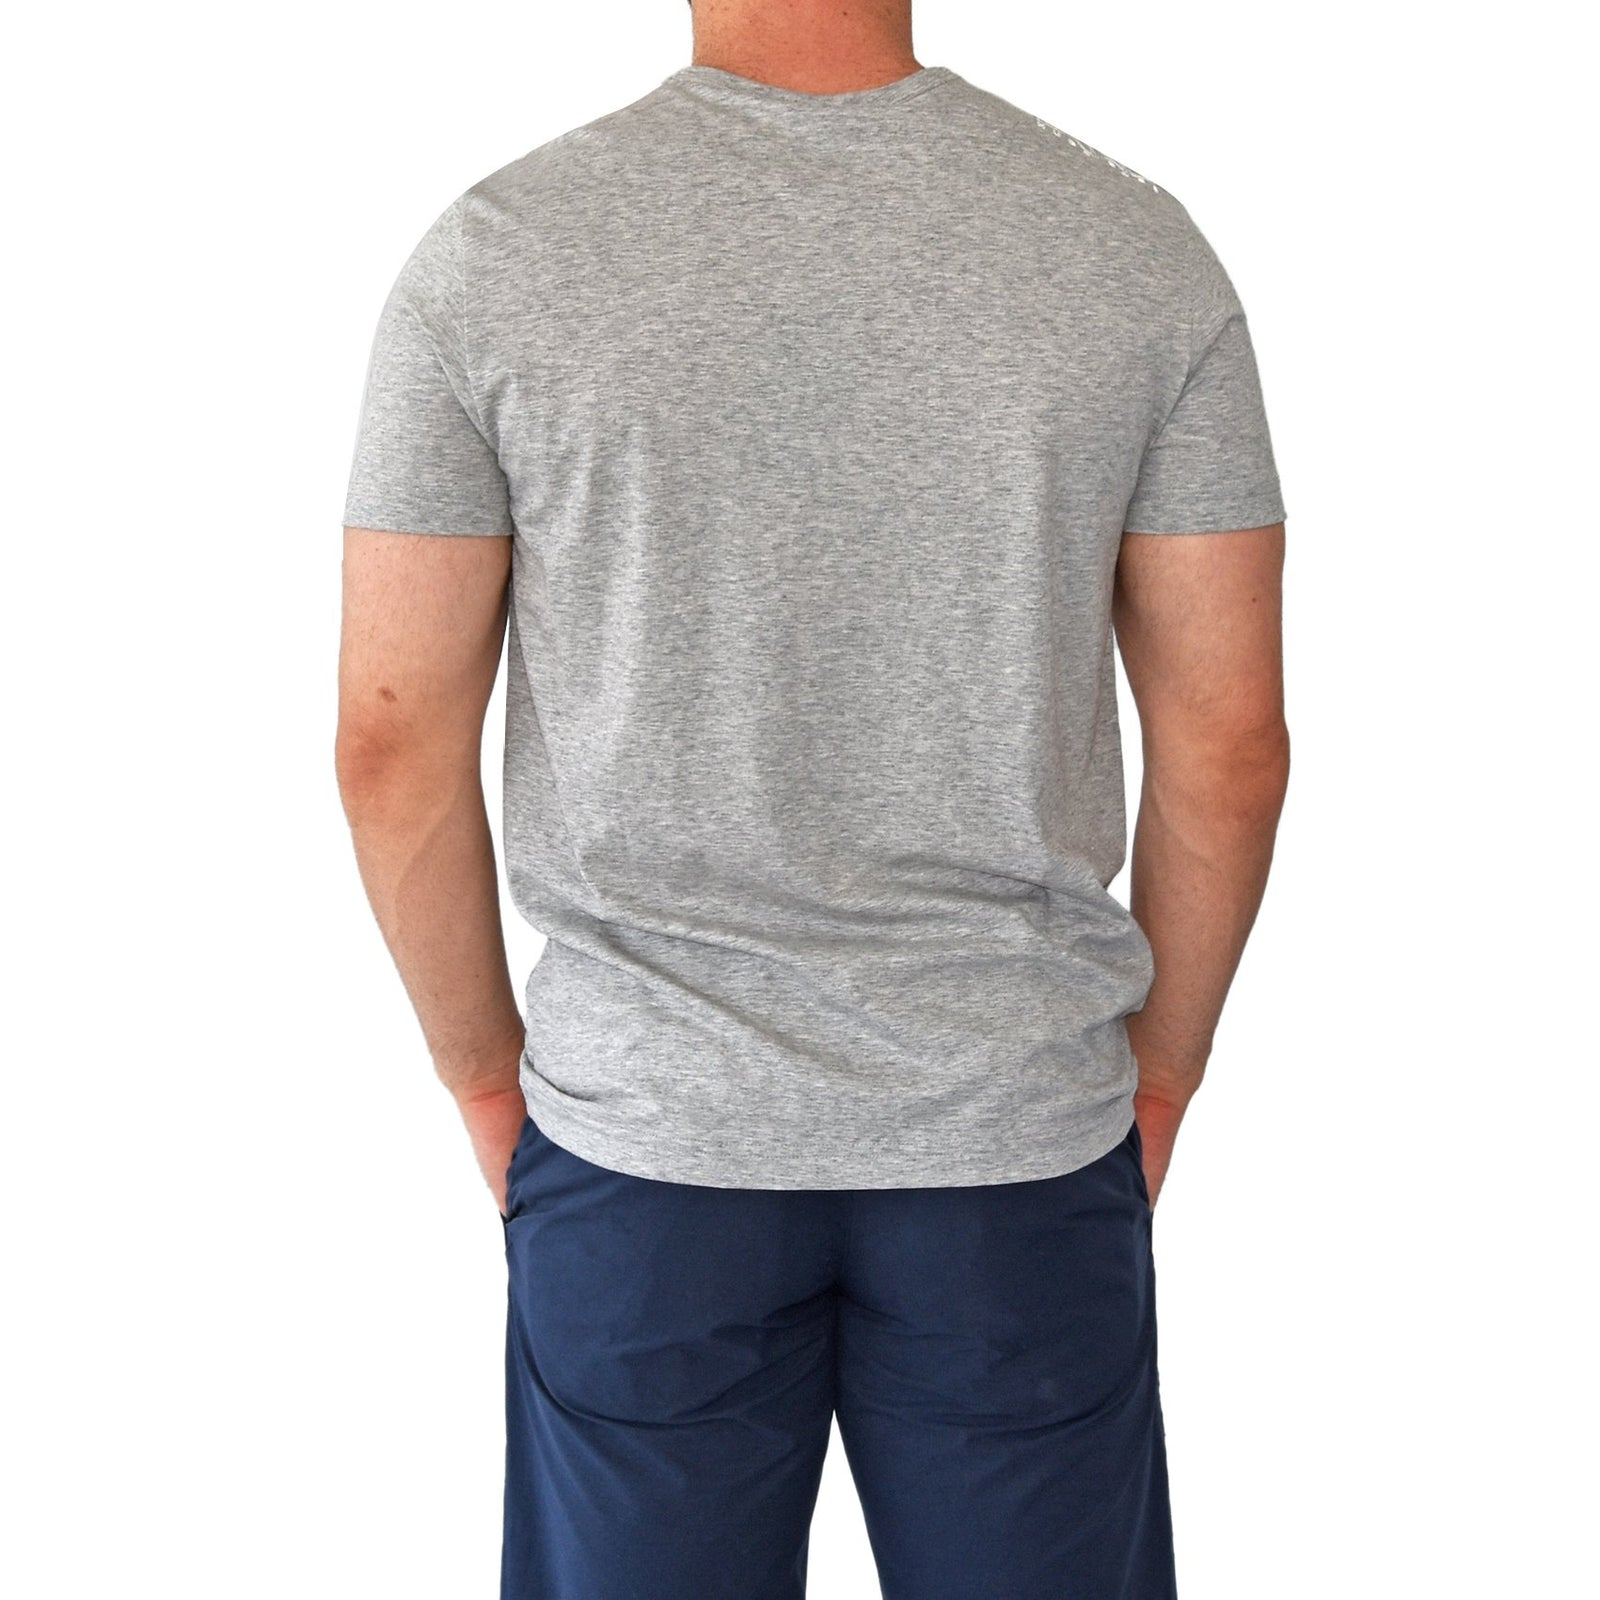 Hugo Boss Tee Reg Fit T-Shirt - Light/Pastel Grey